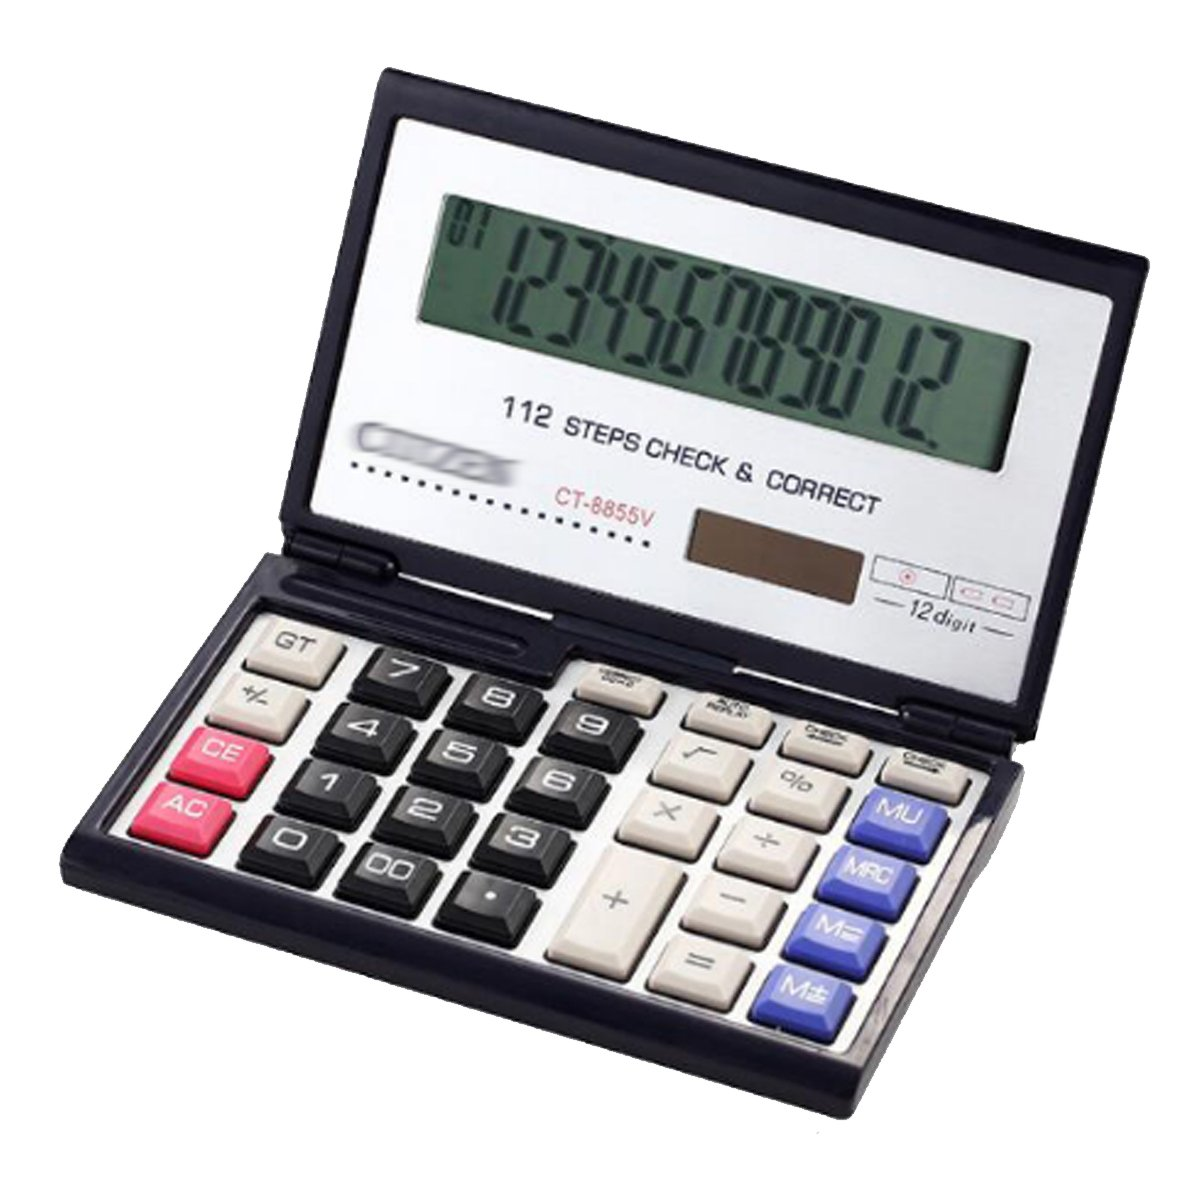 Kennedy 12-digits Large Display Folding Calculator-Solar and Battery Operation For Business, Financial, Student